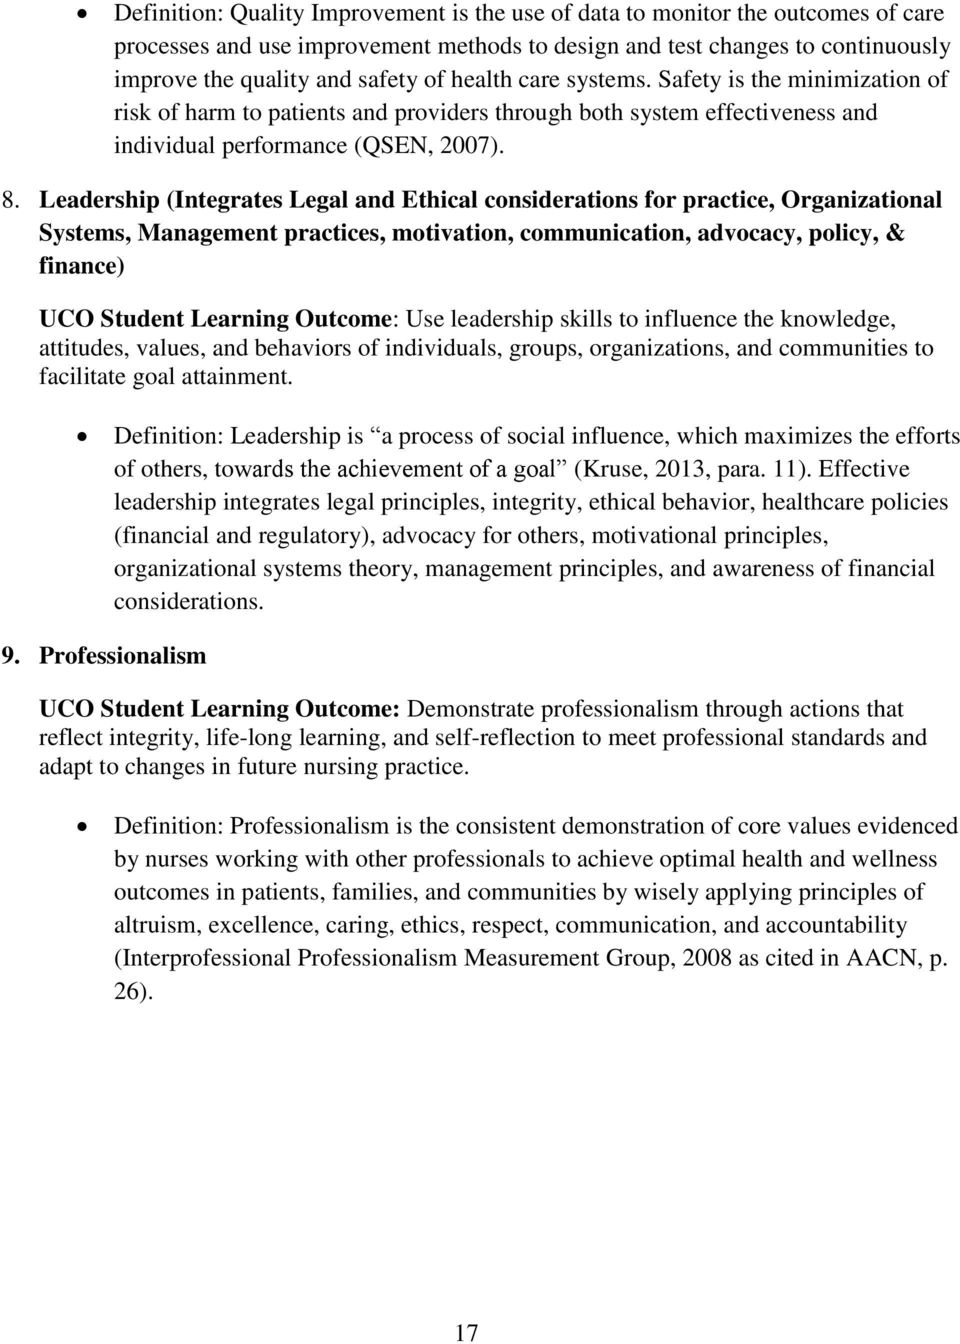 Leadership (Integrates Legal and Ethical considerations for practice, Organizational Systems, Management practices, motivation, communication, advocacy, policy, & finance) UCO Student Learning